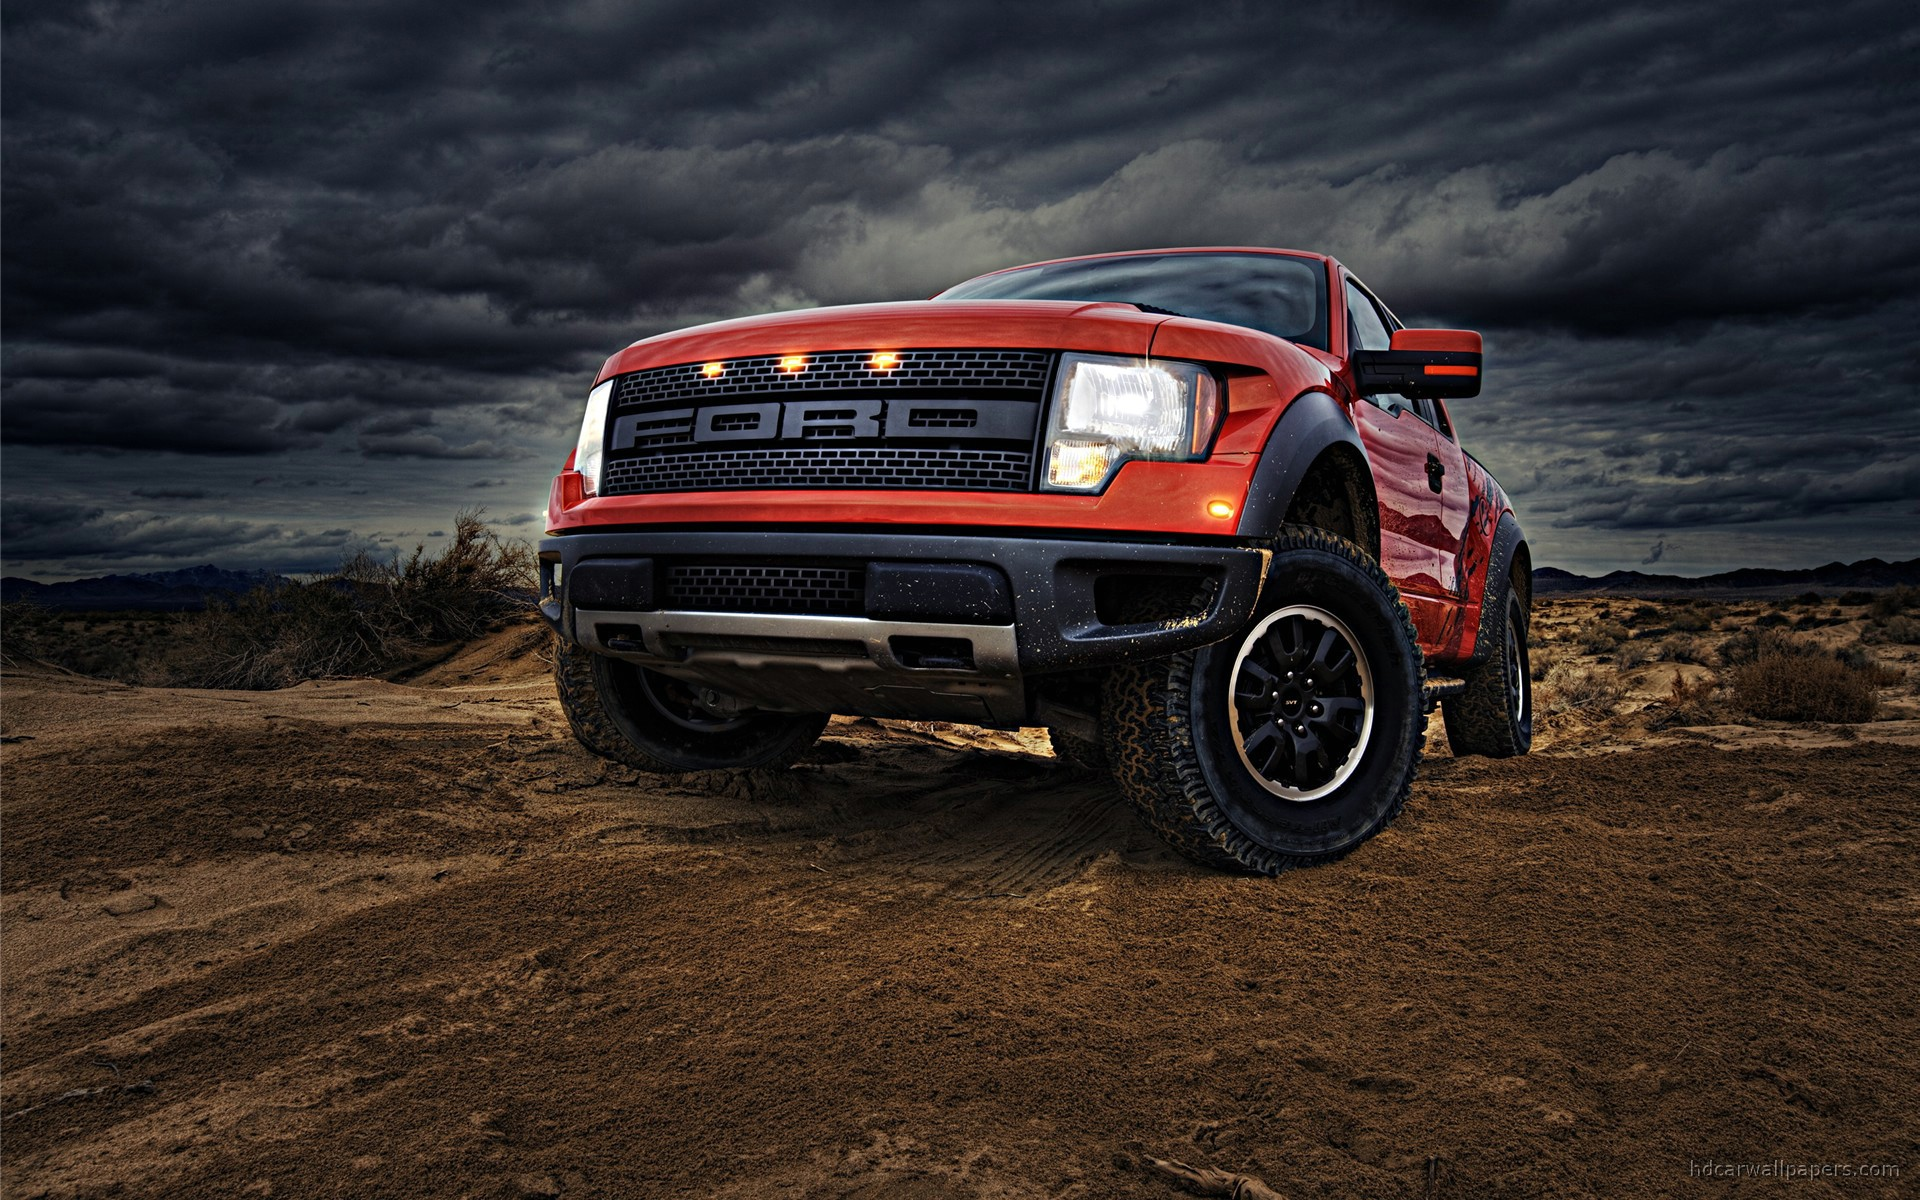 2010 Ford F150 SVT Raptor 3 1544.8 Kb